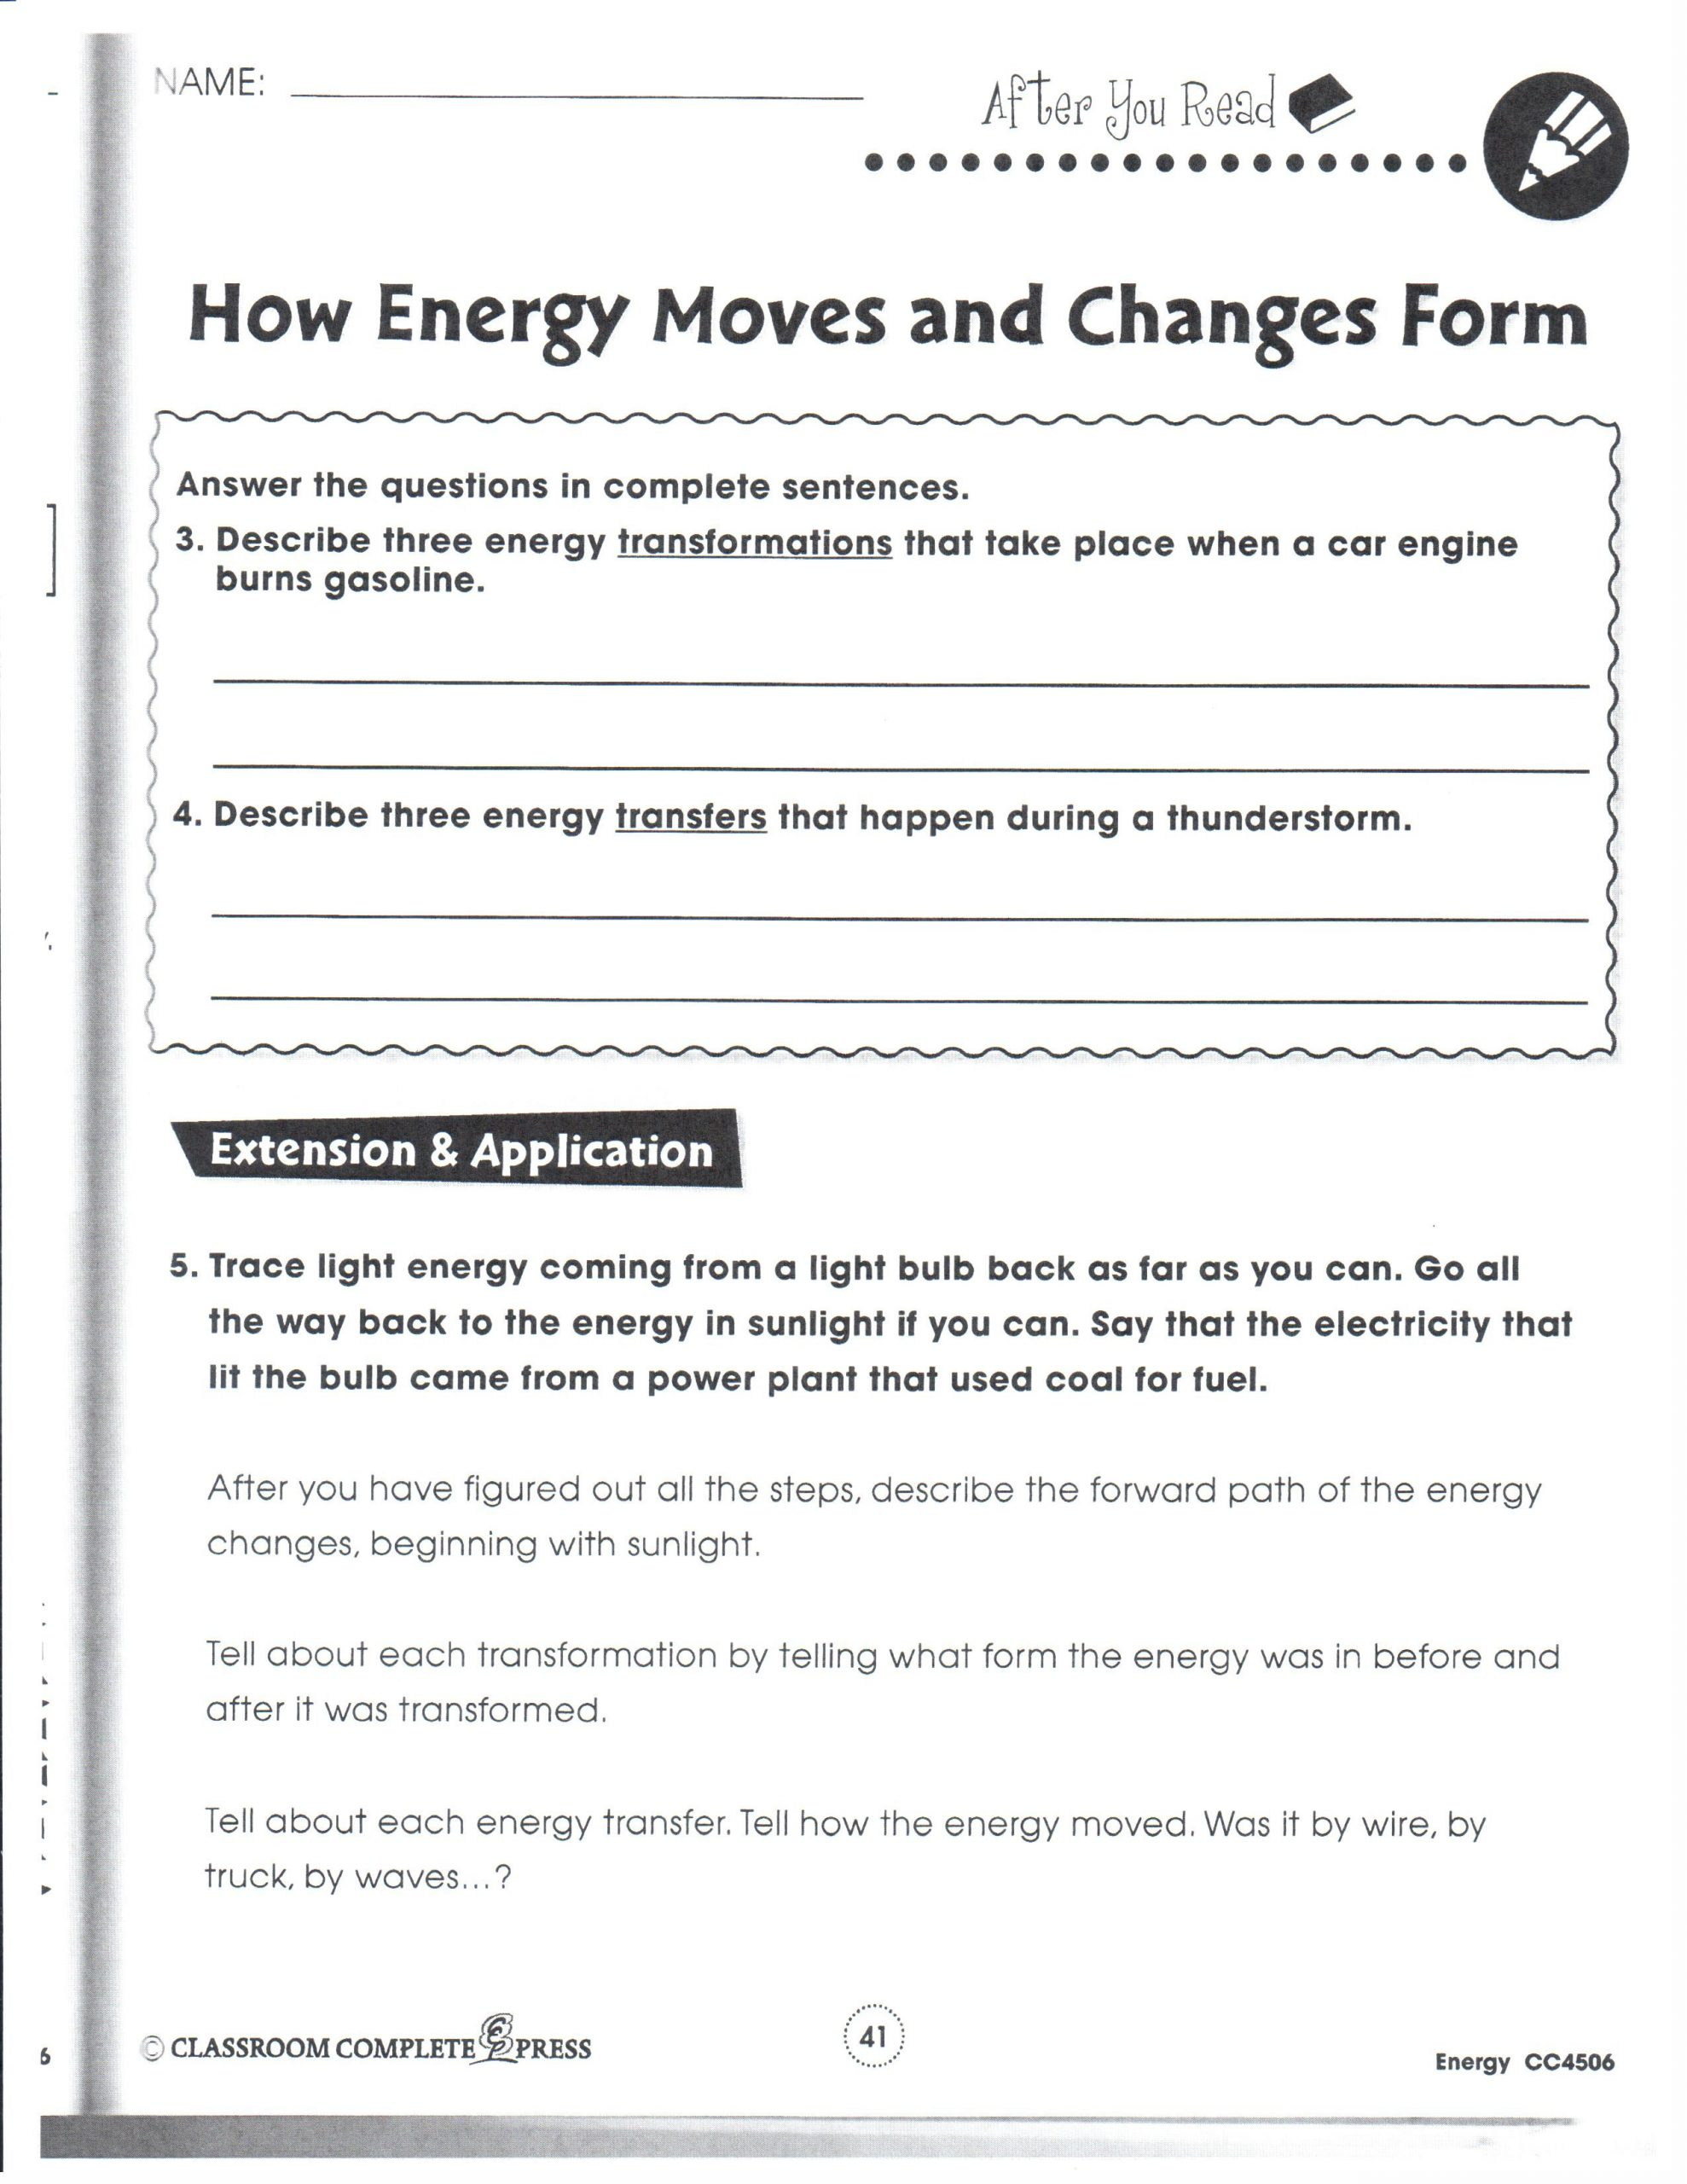 Energy Transformation Worksheet Answers Helpers Essay Domestic Premier Homewares Writing the